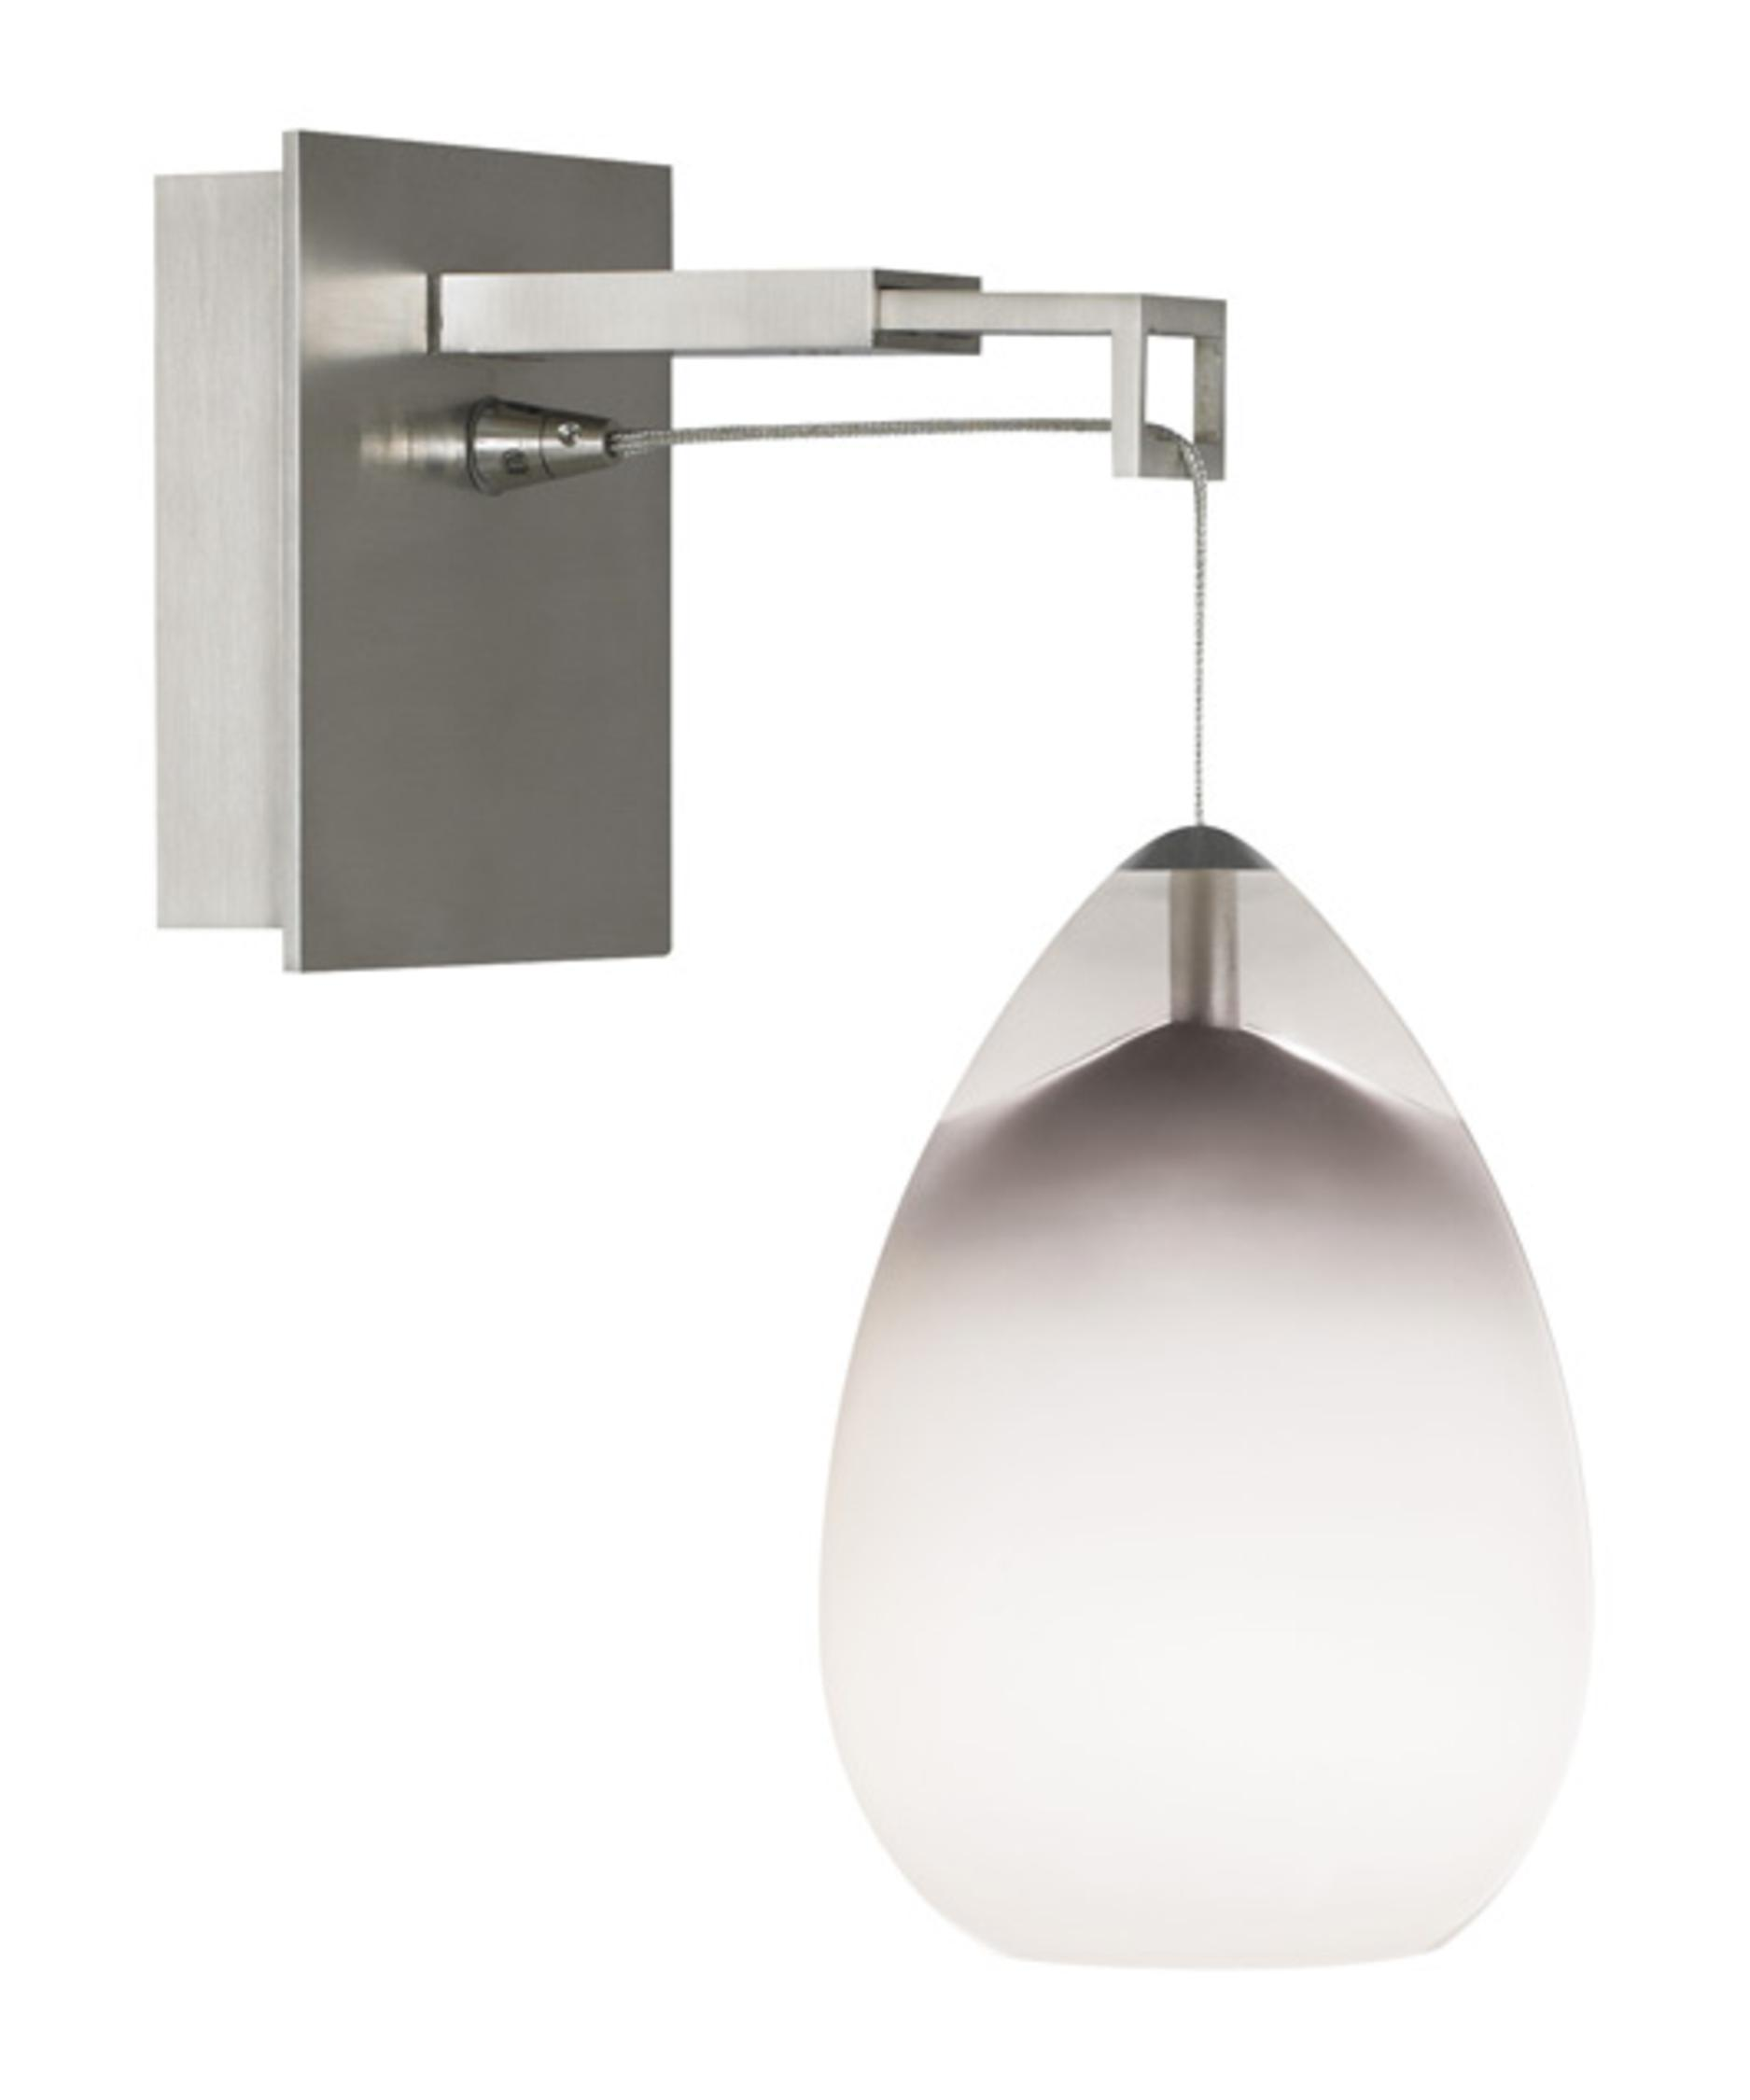 White Wall Sconce Light: White Wall Sconce Light - 10 Reasons To Install